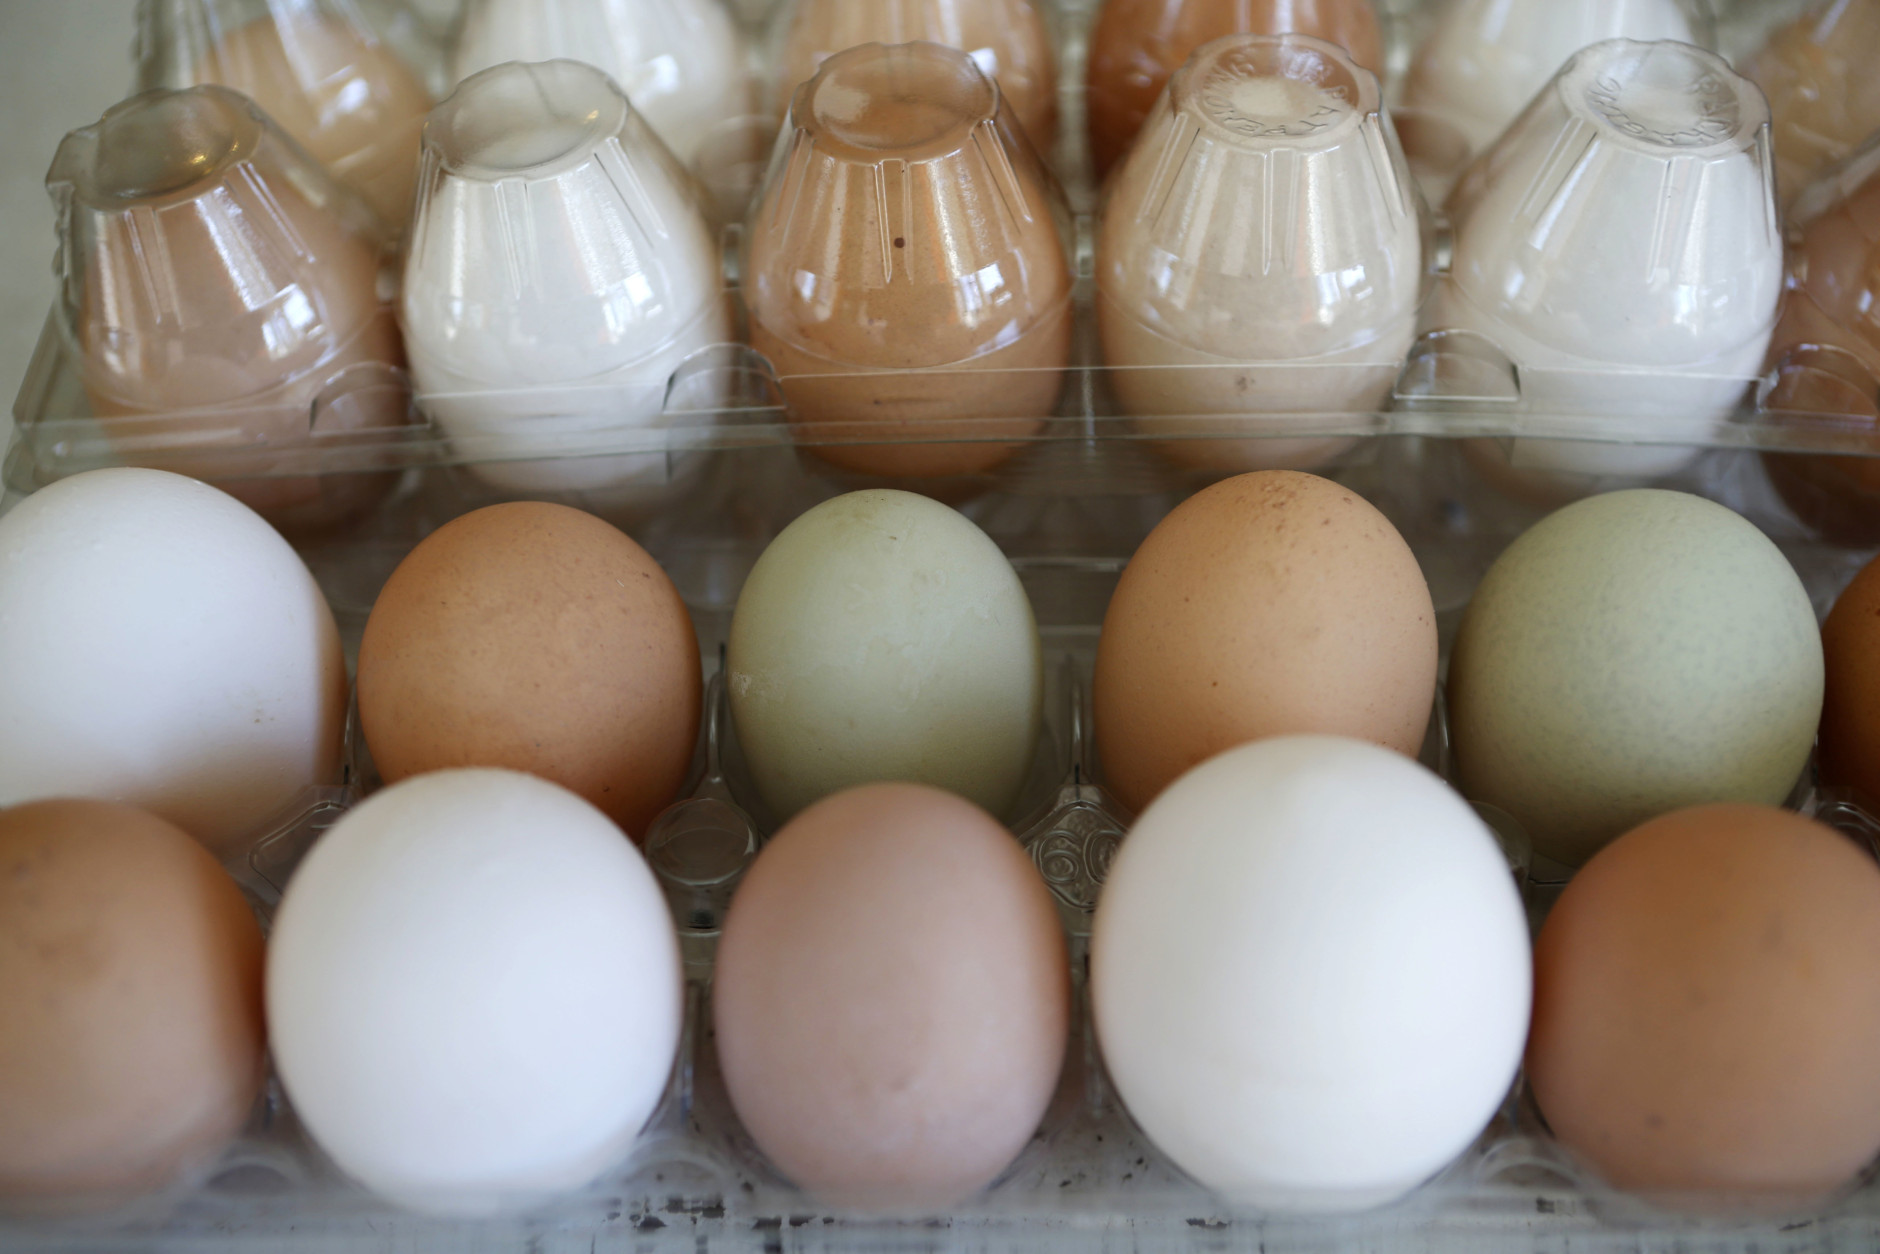 """In this Friday, April 15, 2016 photo, fresh eggs are packaged for sale at the Quill's End Farm, a small family run operation in Penobscot, Maine. Supporters of an unsuccessful attempt to amend Maine's constitution to ensure a """"right to food"""" say the defeat is only a bump in the road for advocates of food freedom around the country. (AP Photo/Robert F. Bukaty)"""